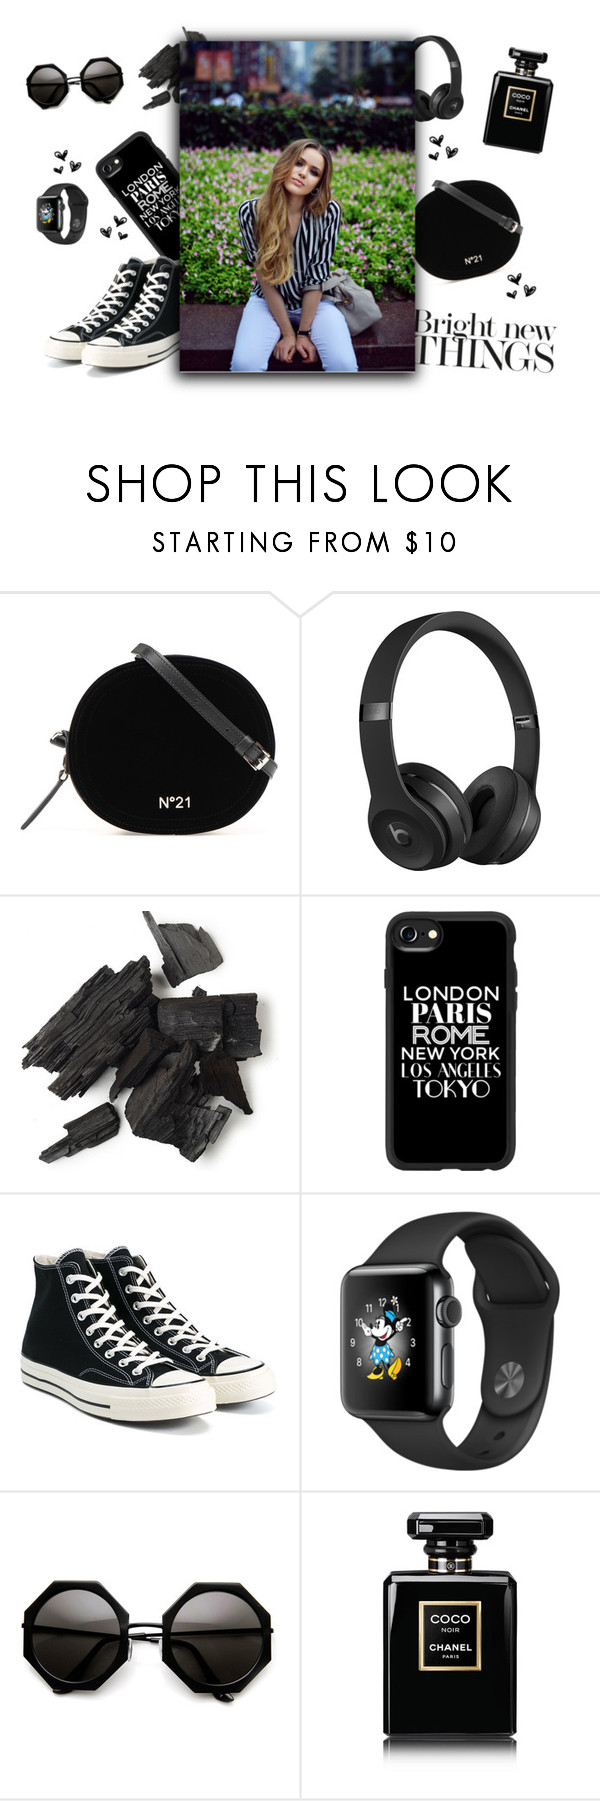 """""""Bright New Things"""" by monique-joanne ❤ liked on Polyvore featuring Beats by Dr. Dre, Casetify, Converse, Chanel, seattle and outfitsfortravel"""